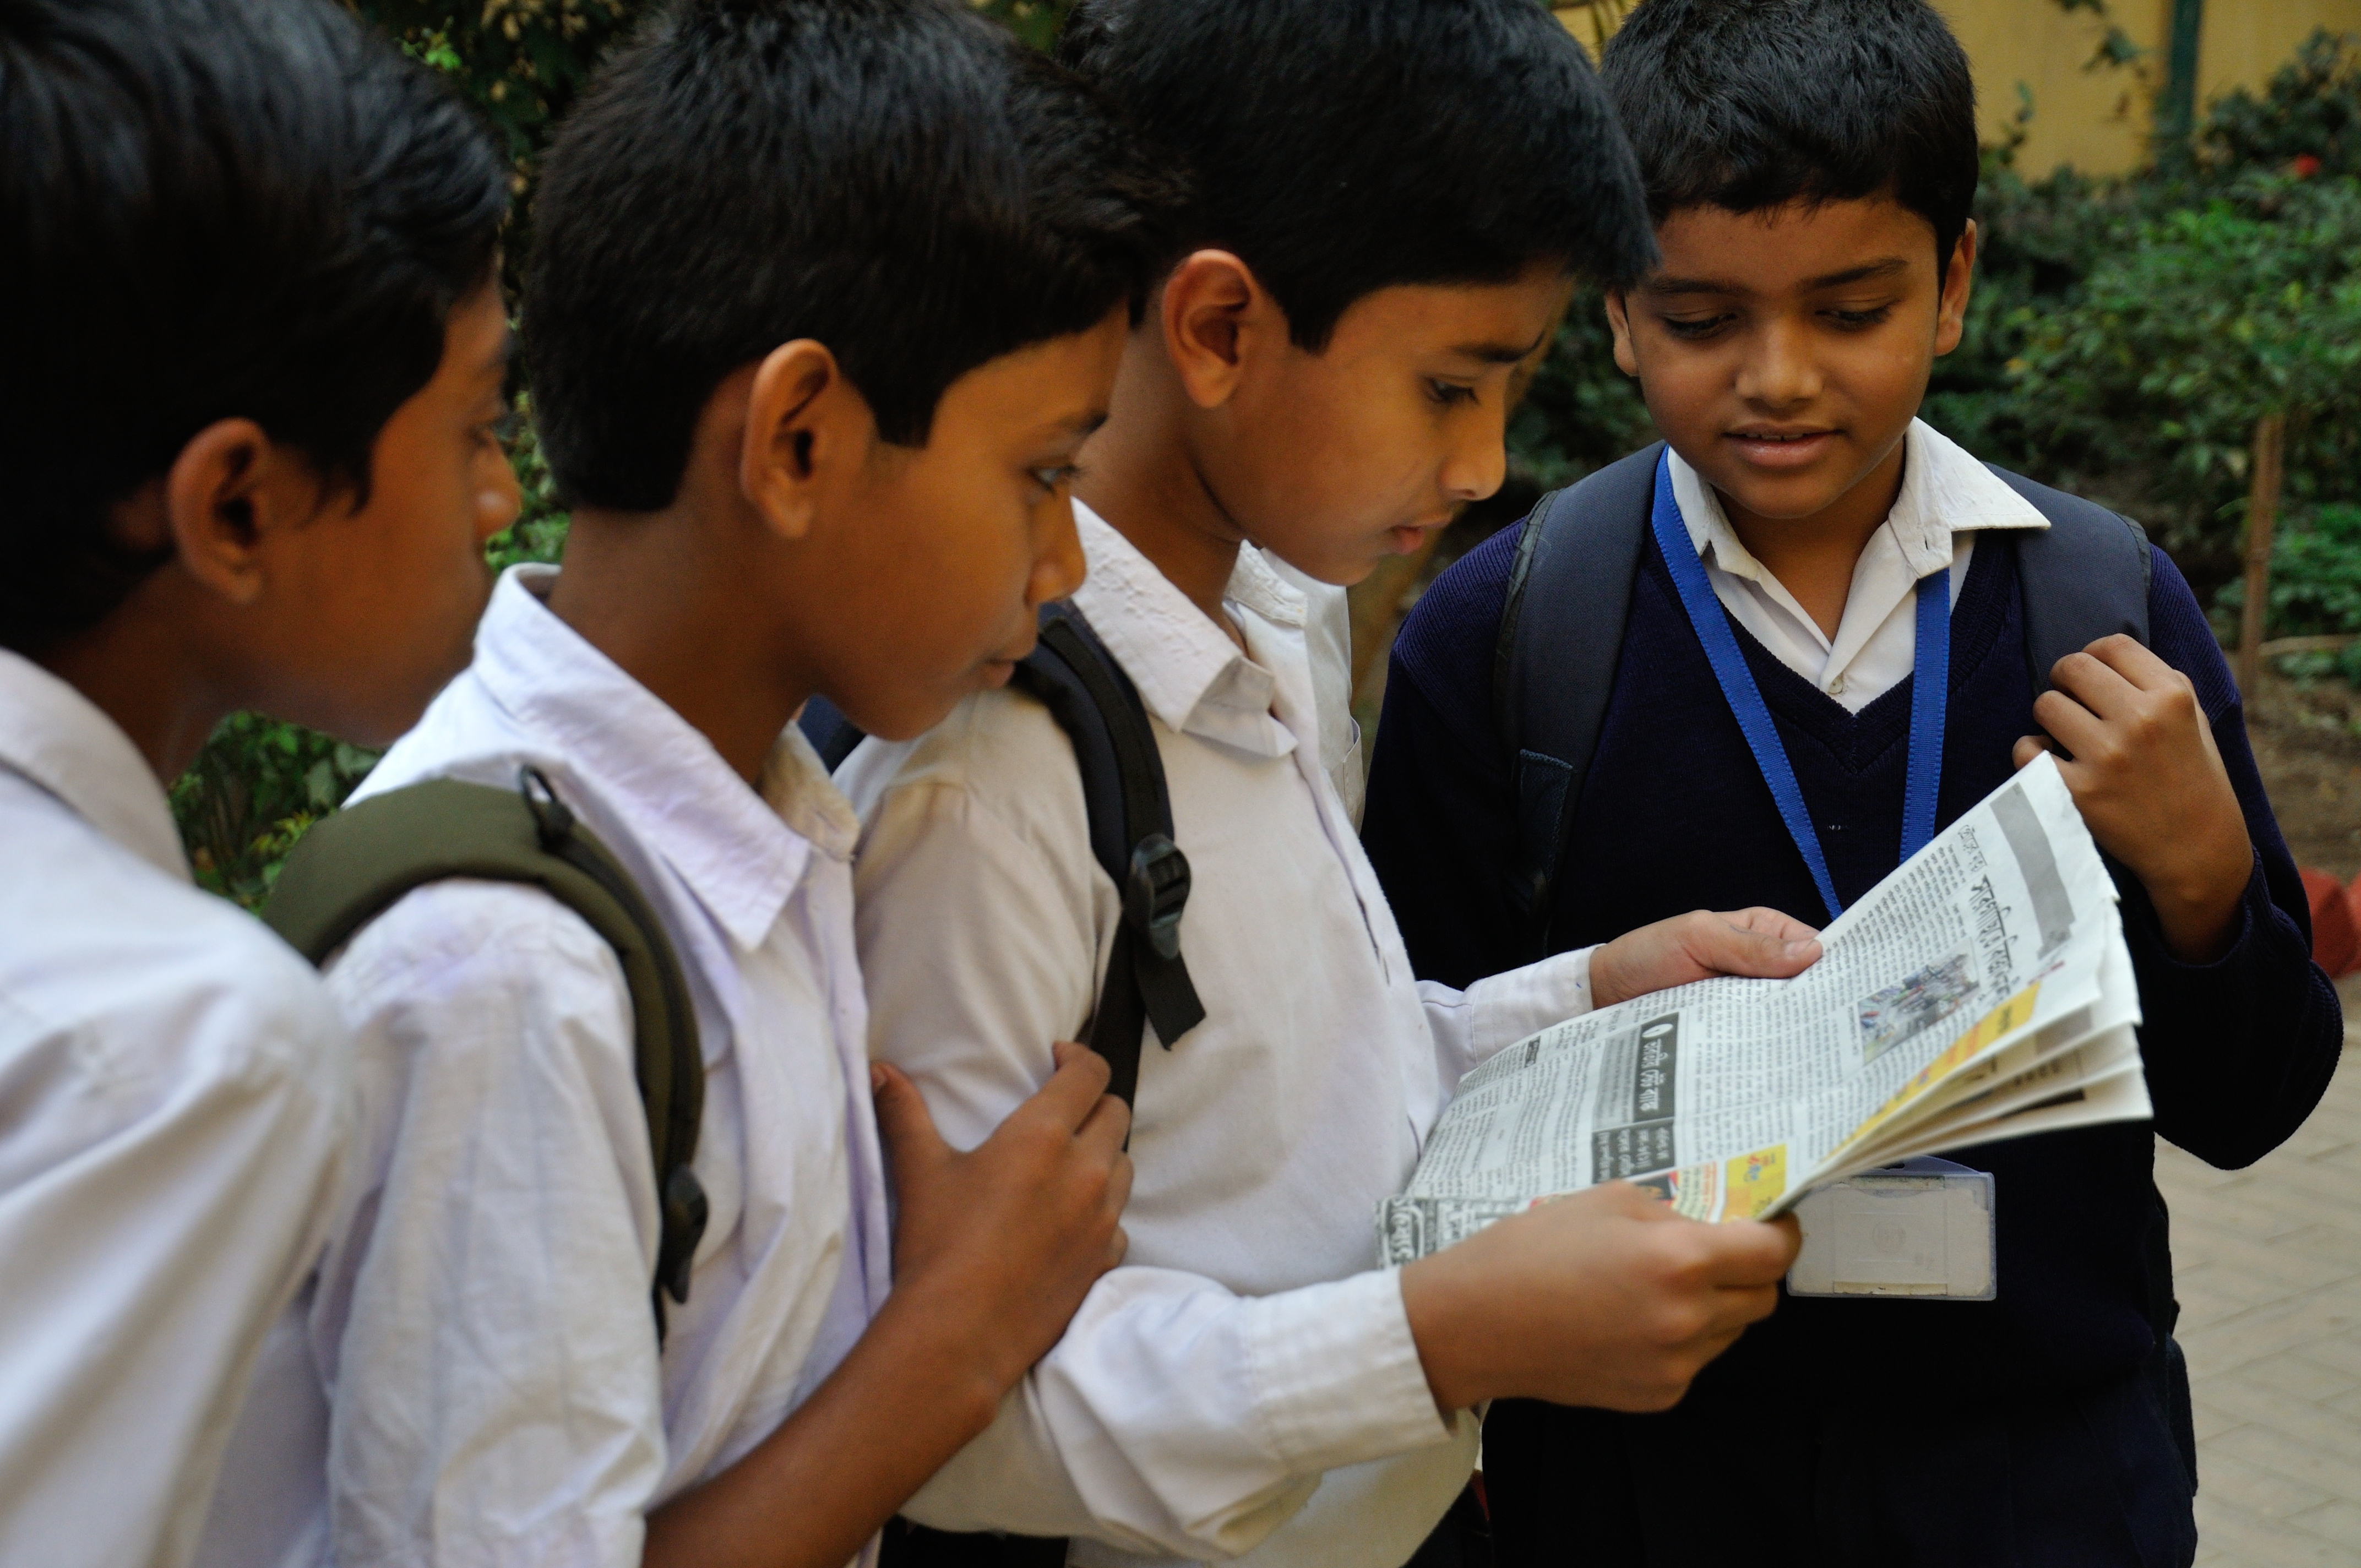 file:students reading newspaper - ramakrishna mission ashrama